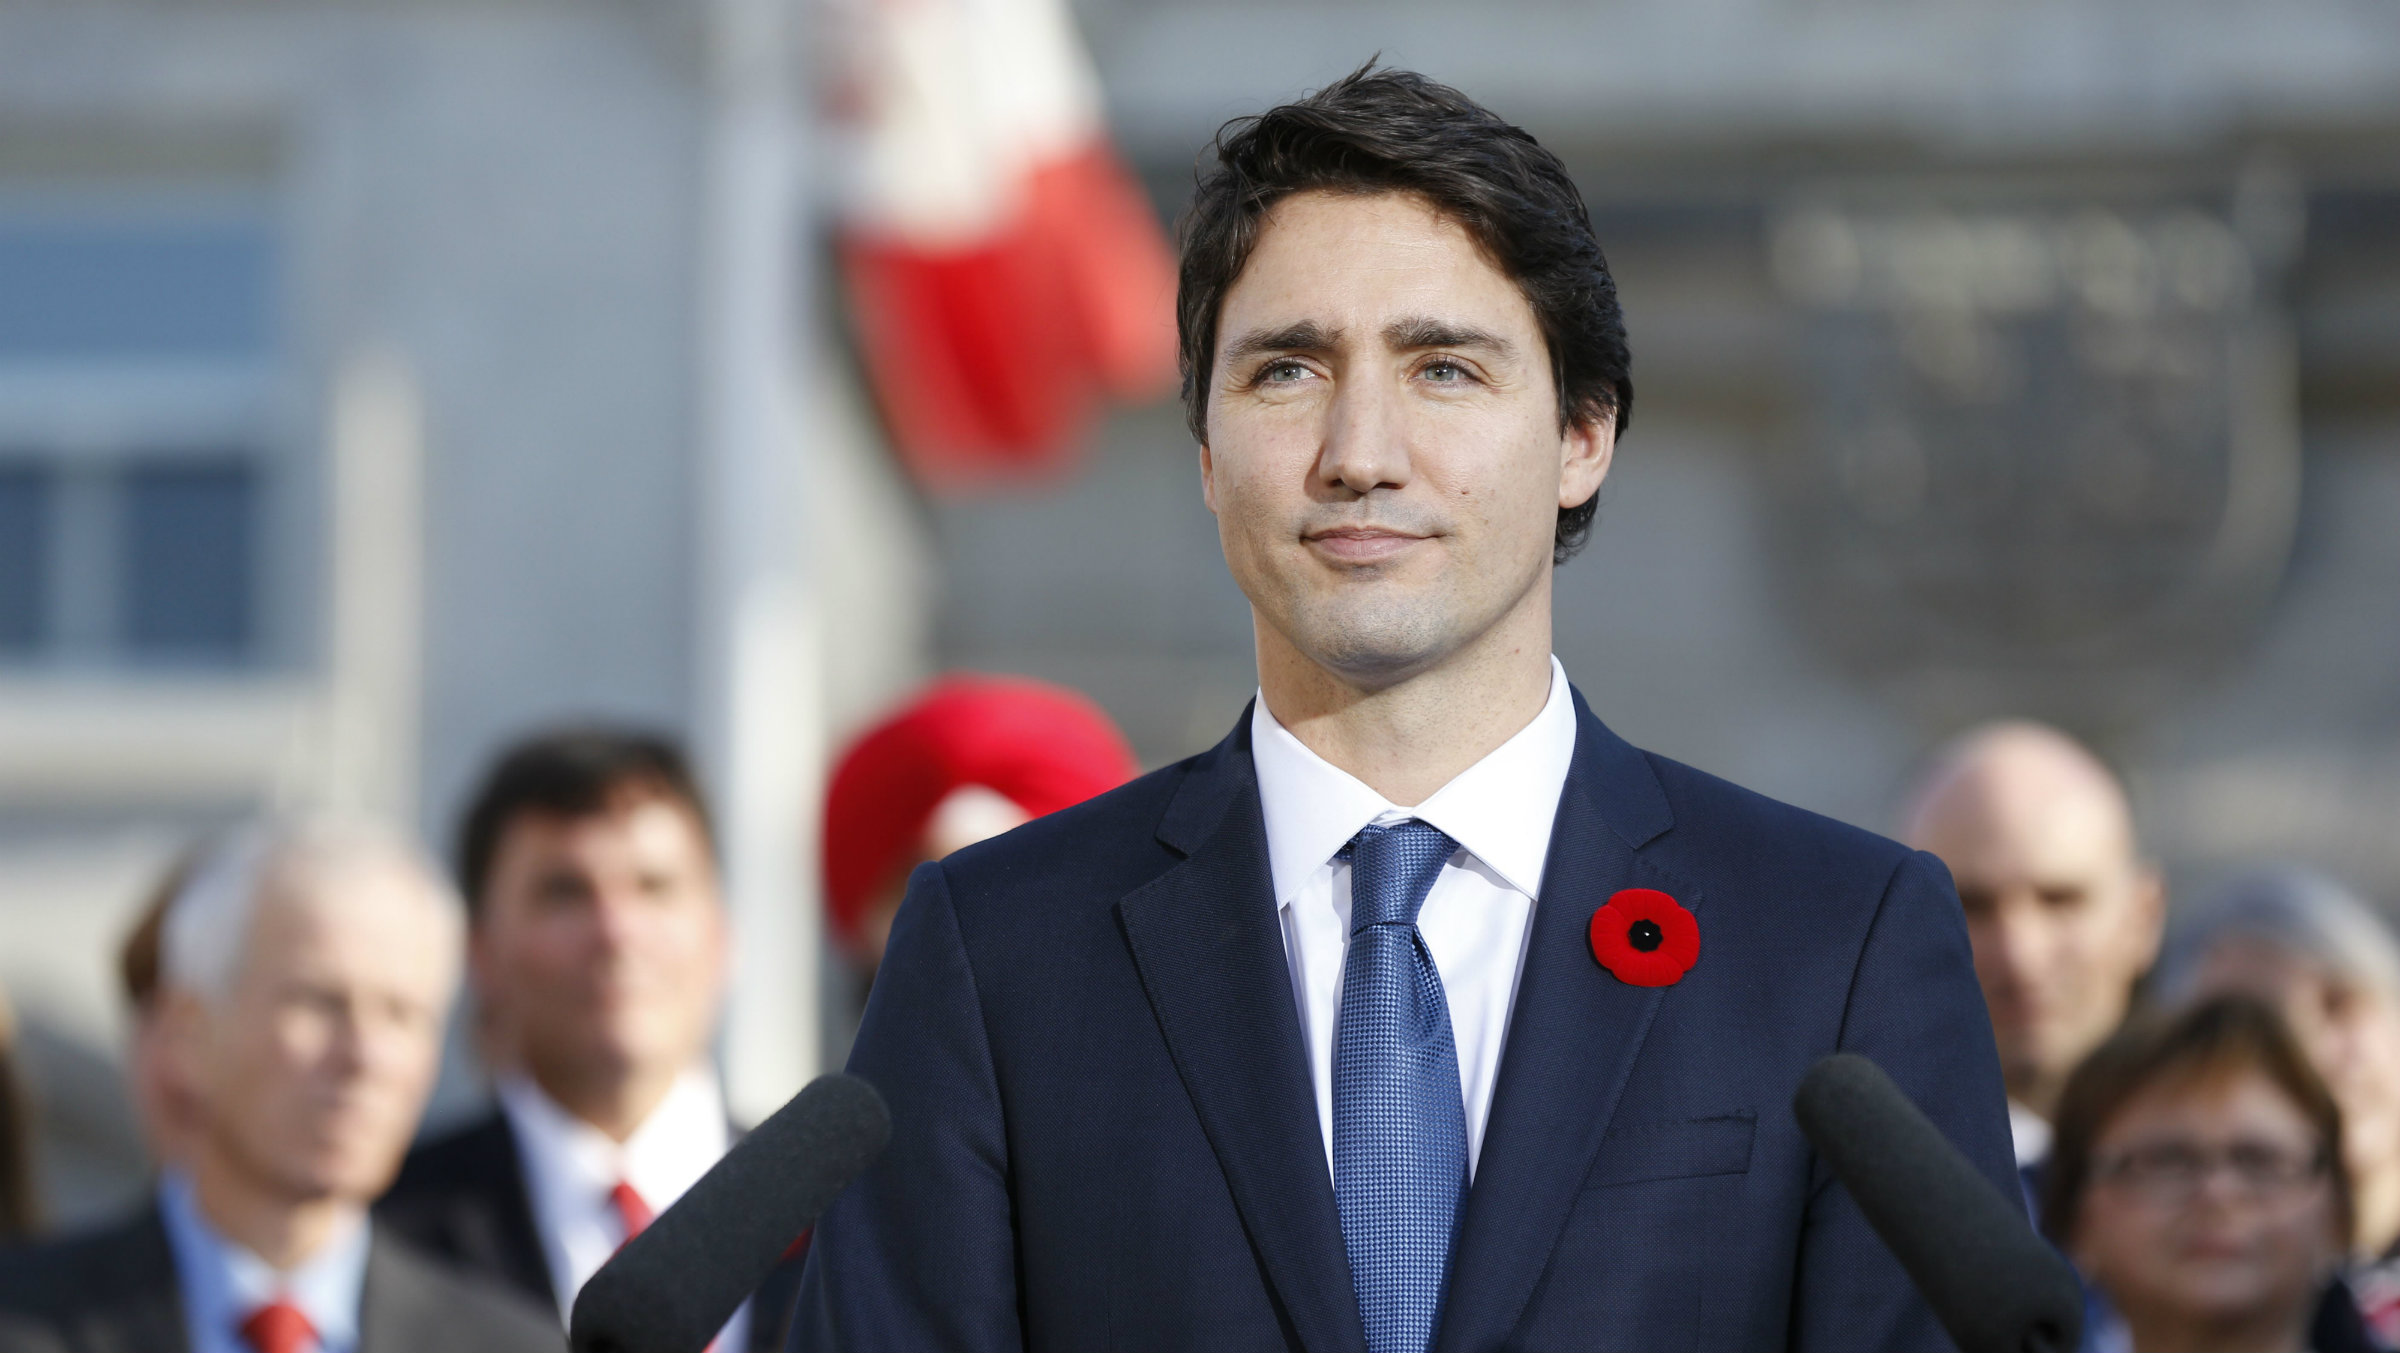 Trudeau looking into distance